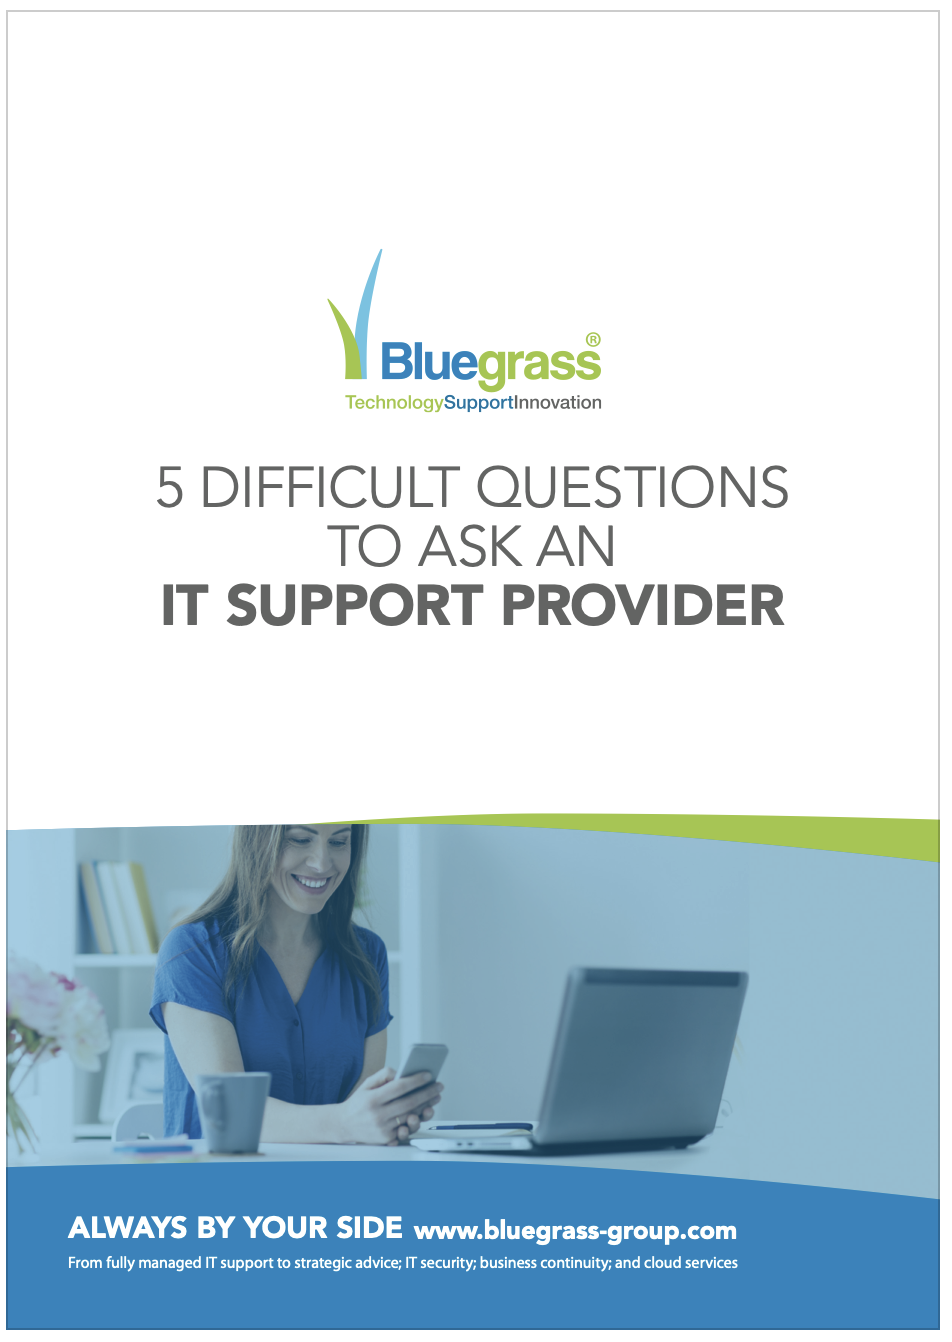 Questions for IT Provider